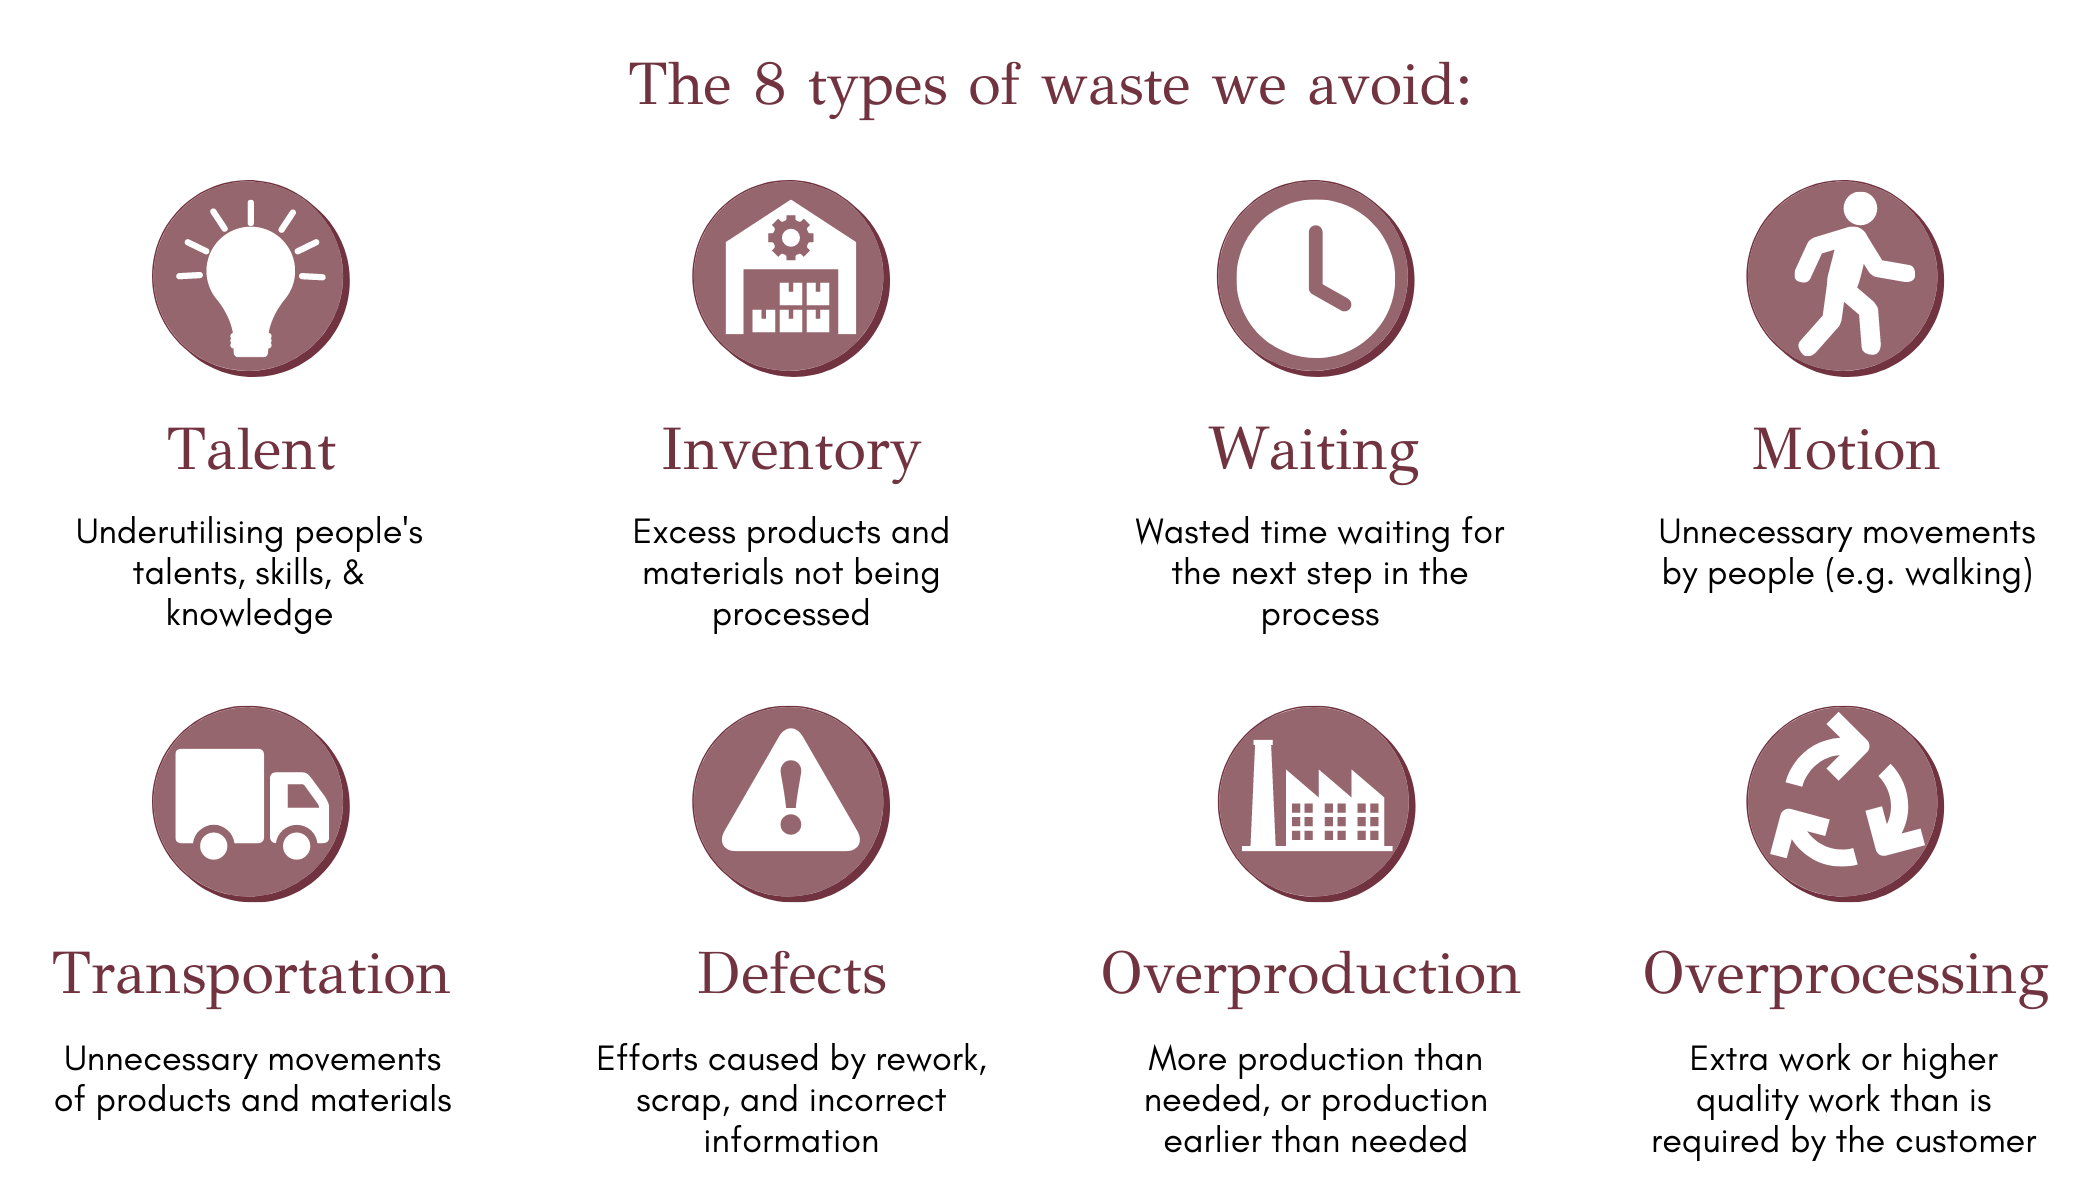 Copy_of_8WastesLumiere2.png?v=1611725854